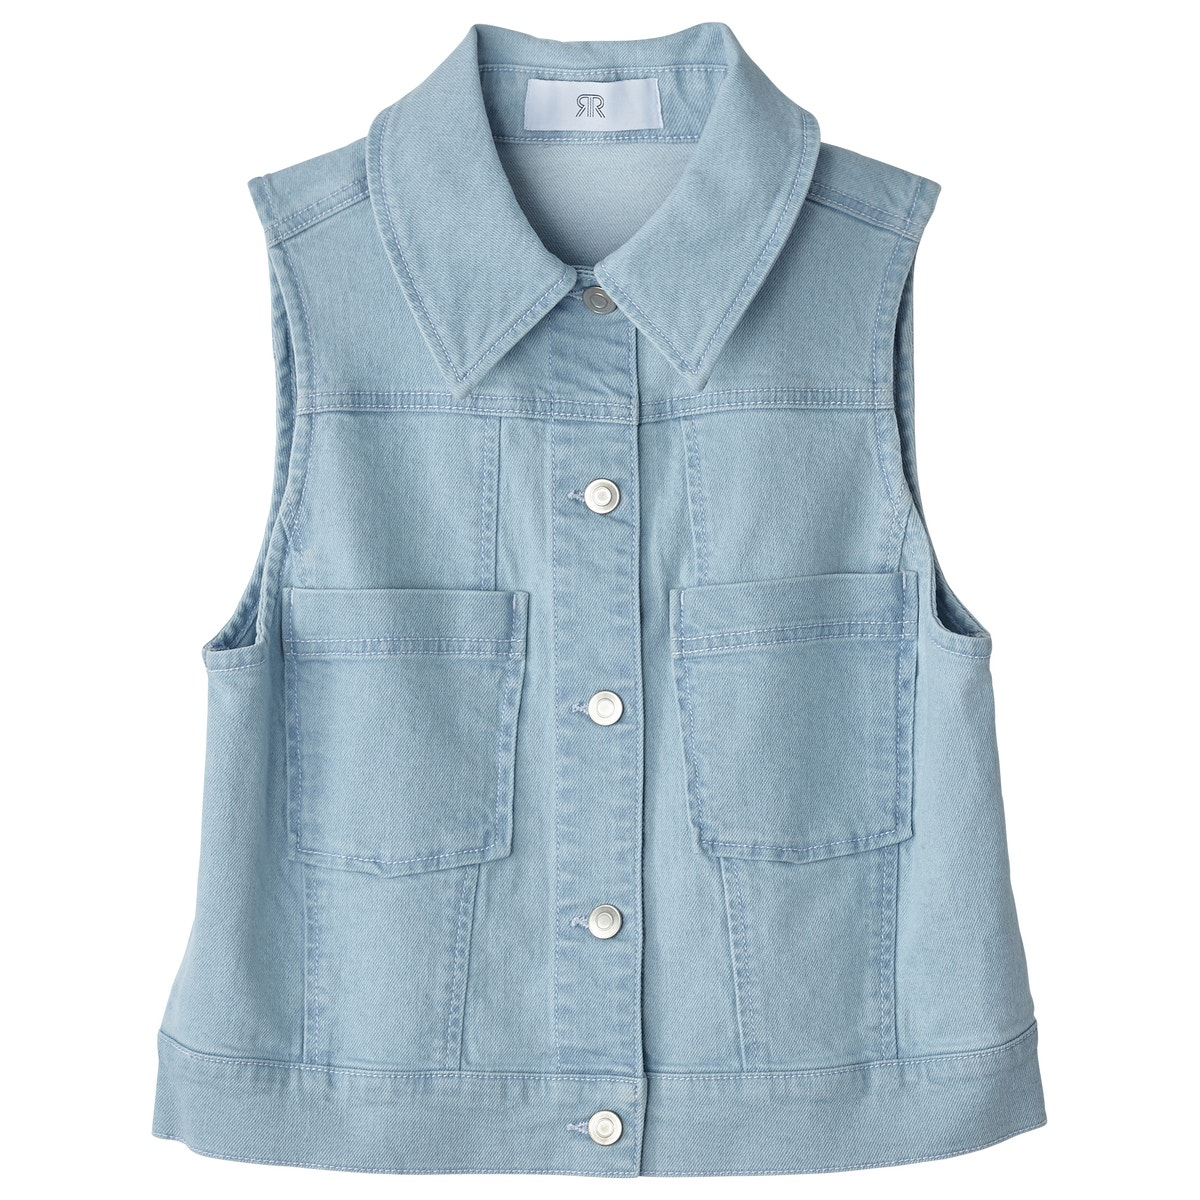 edacb1a035e363 La Redoute Collections Womens Sleeveless Denim Jacket